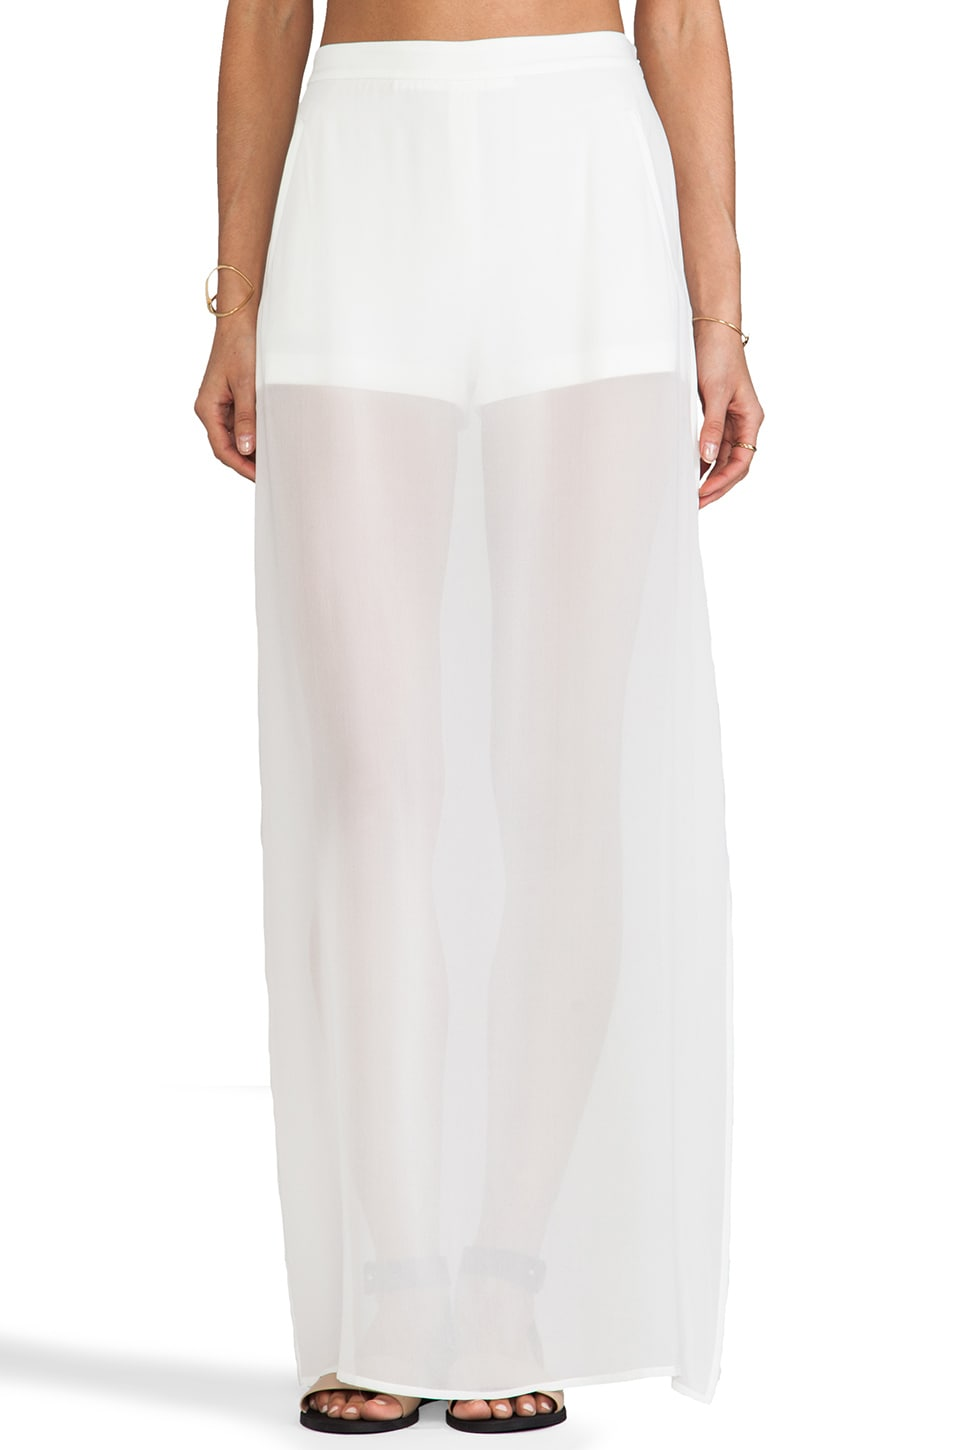 BCBGMAXAZRIA Beshoy Skirt in Off White